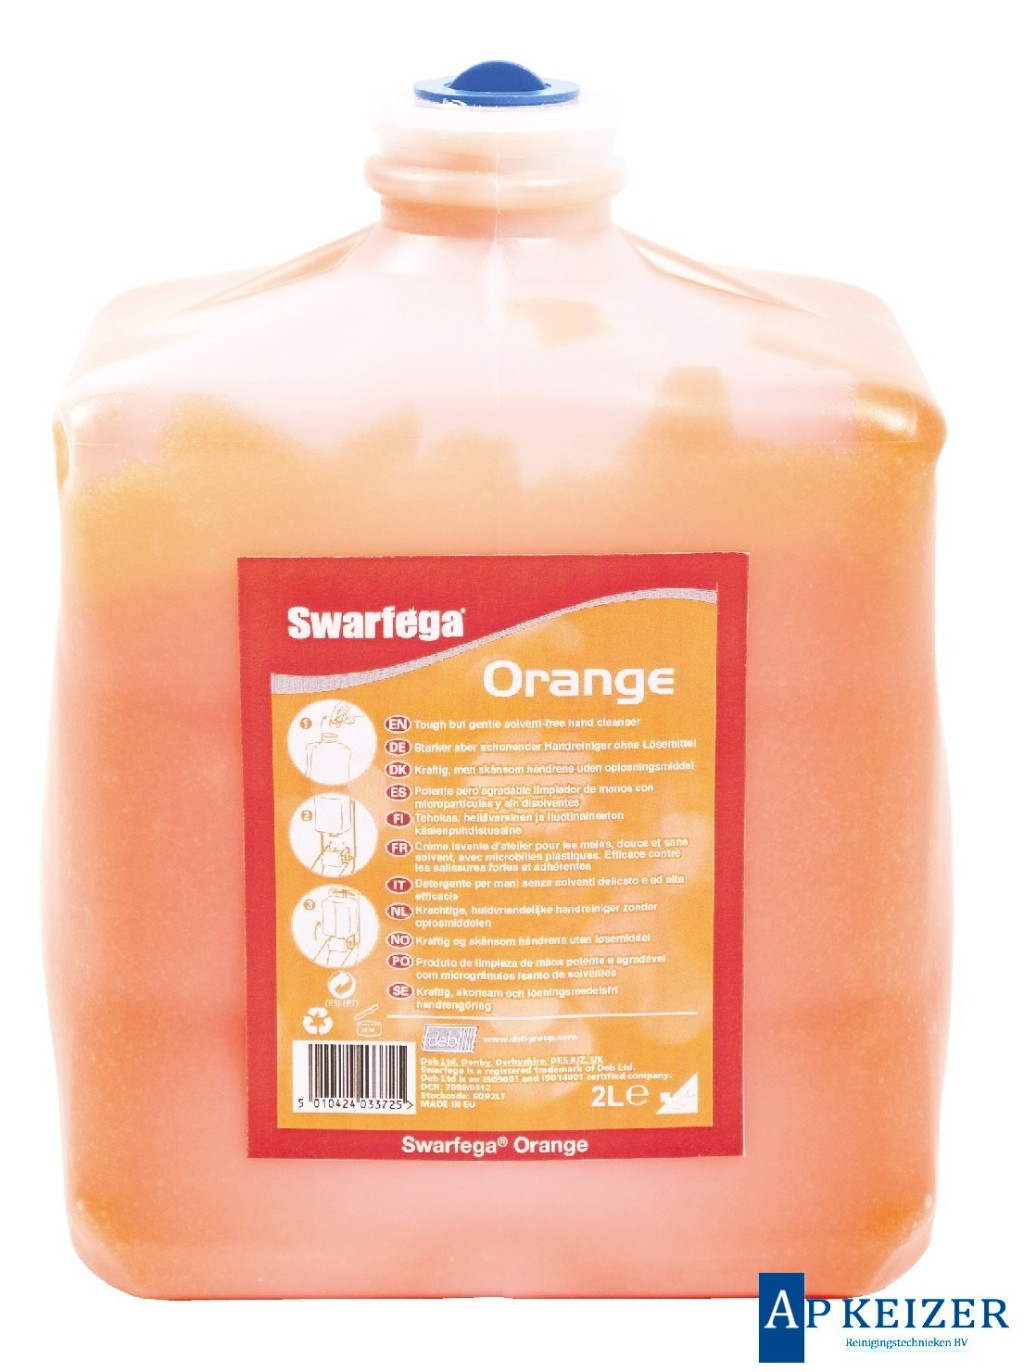 swarfega orange handcleaner met korrel 4 x 4 5 liter pot ap keizer reinigingstechnieken b v. Black Bedroom Furniture Sets. Home Design Ideas